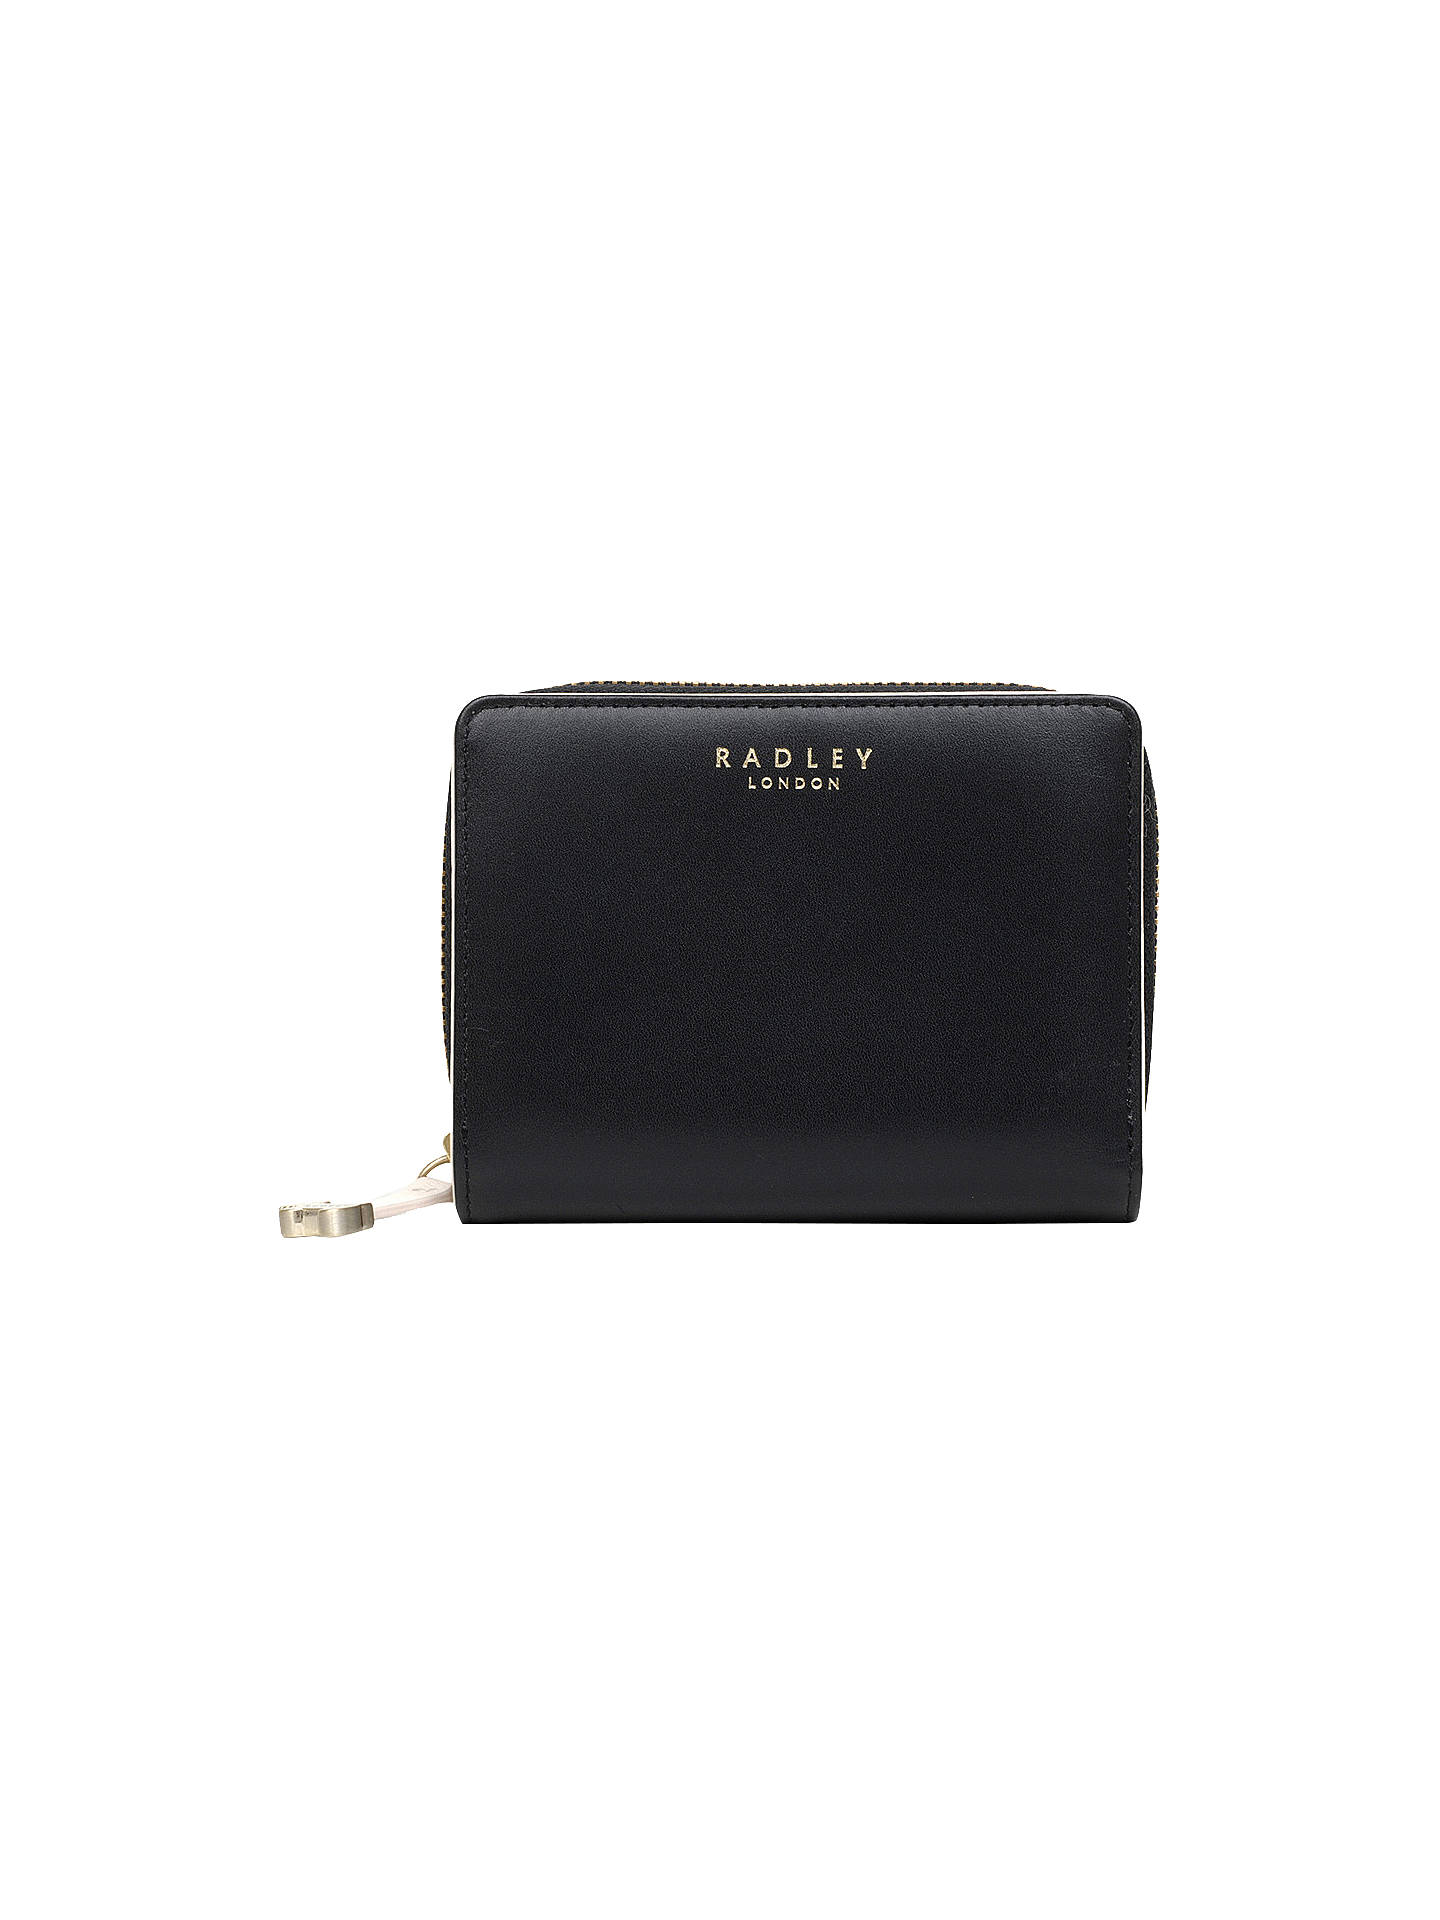 Buy Radley Arlington Street Medium Zip Around Purse, Black Online at johnlewis.com